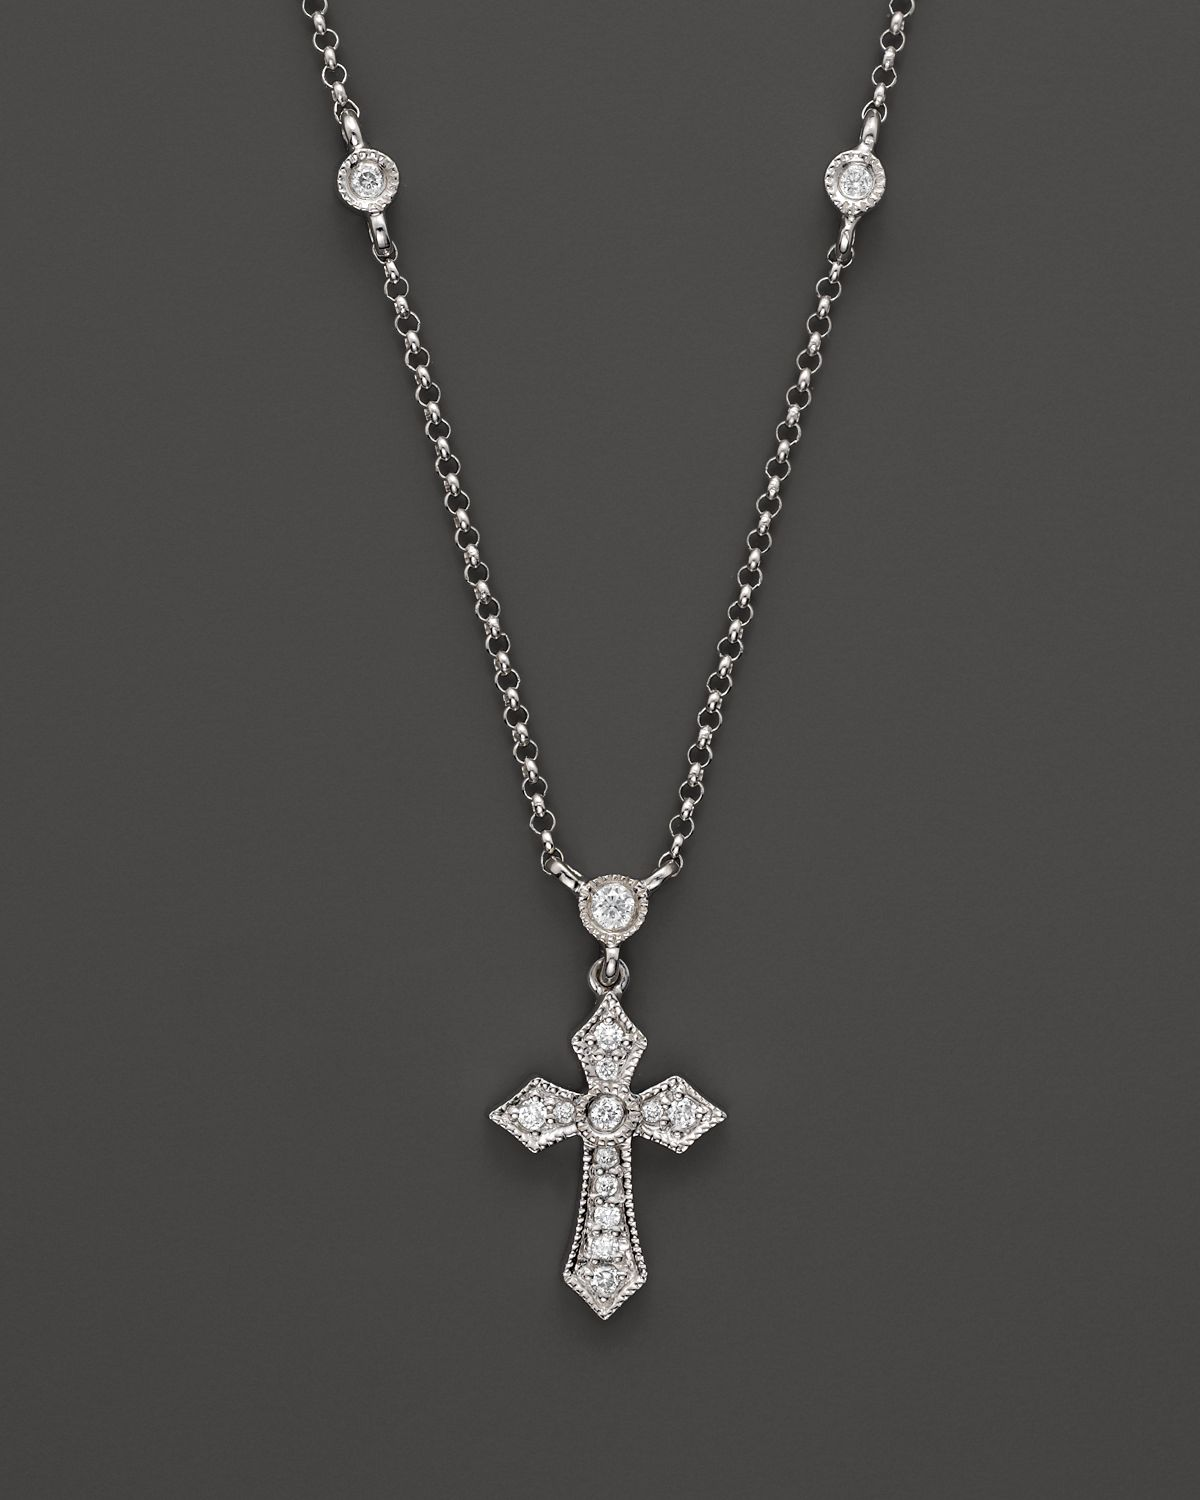 Kc Designs Cross Pendant Necklace With Diamond Stations In